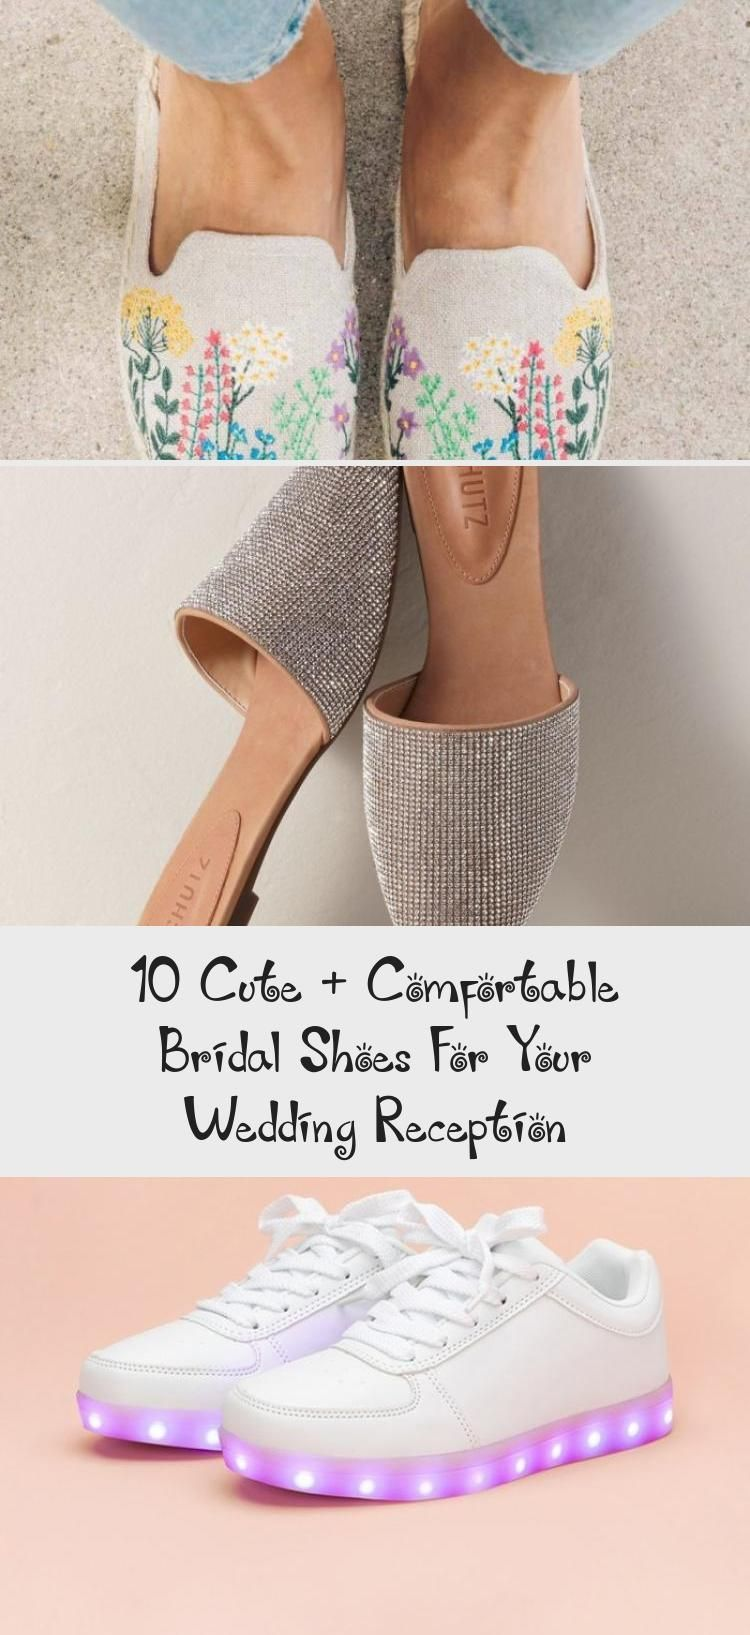 10 Cute + Comfortable Bridal Shoes For Your Wedding Reception - Duds ,  #badgleymischkaBridal...